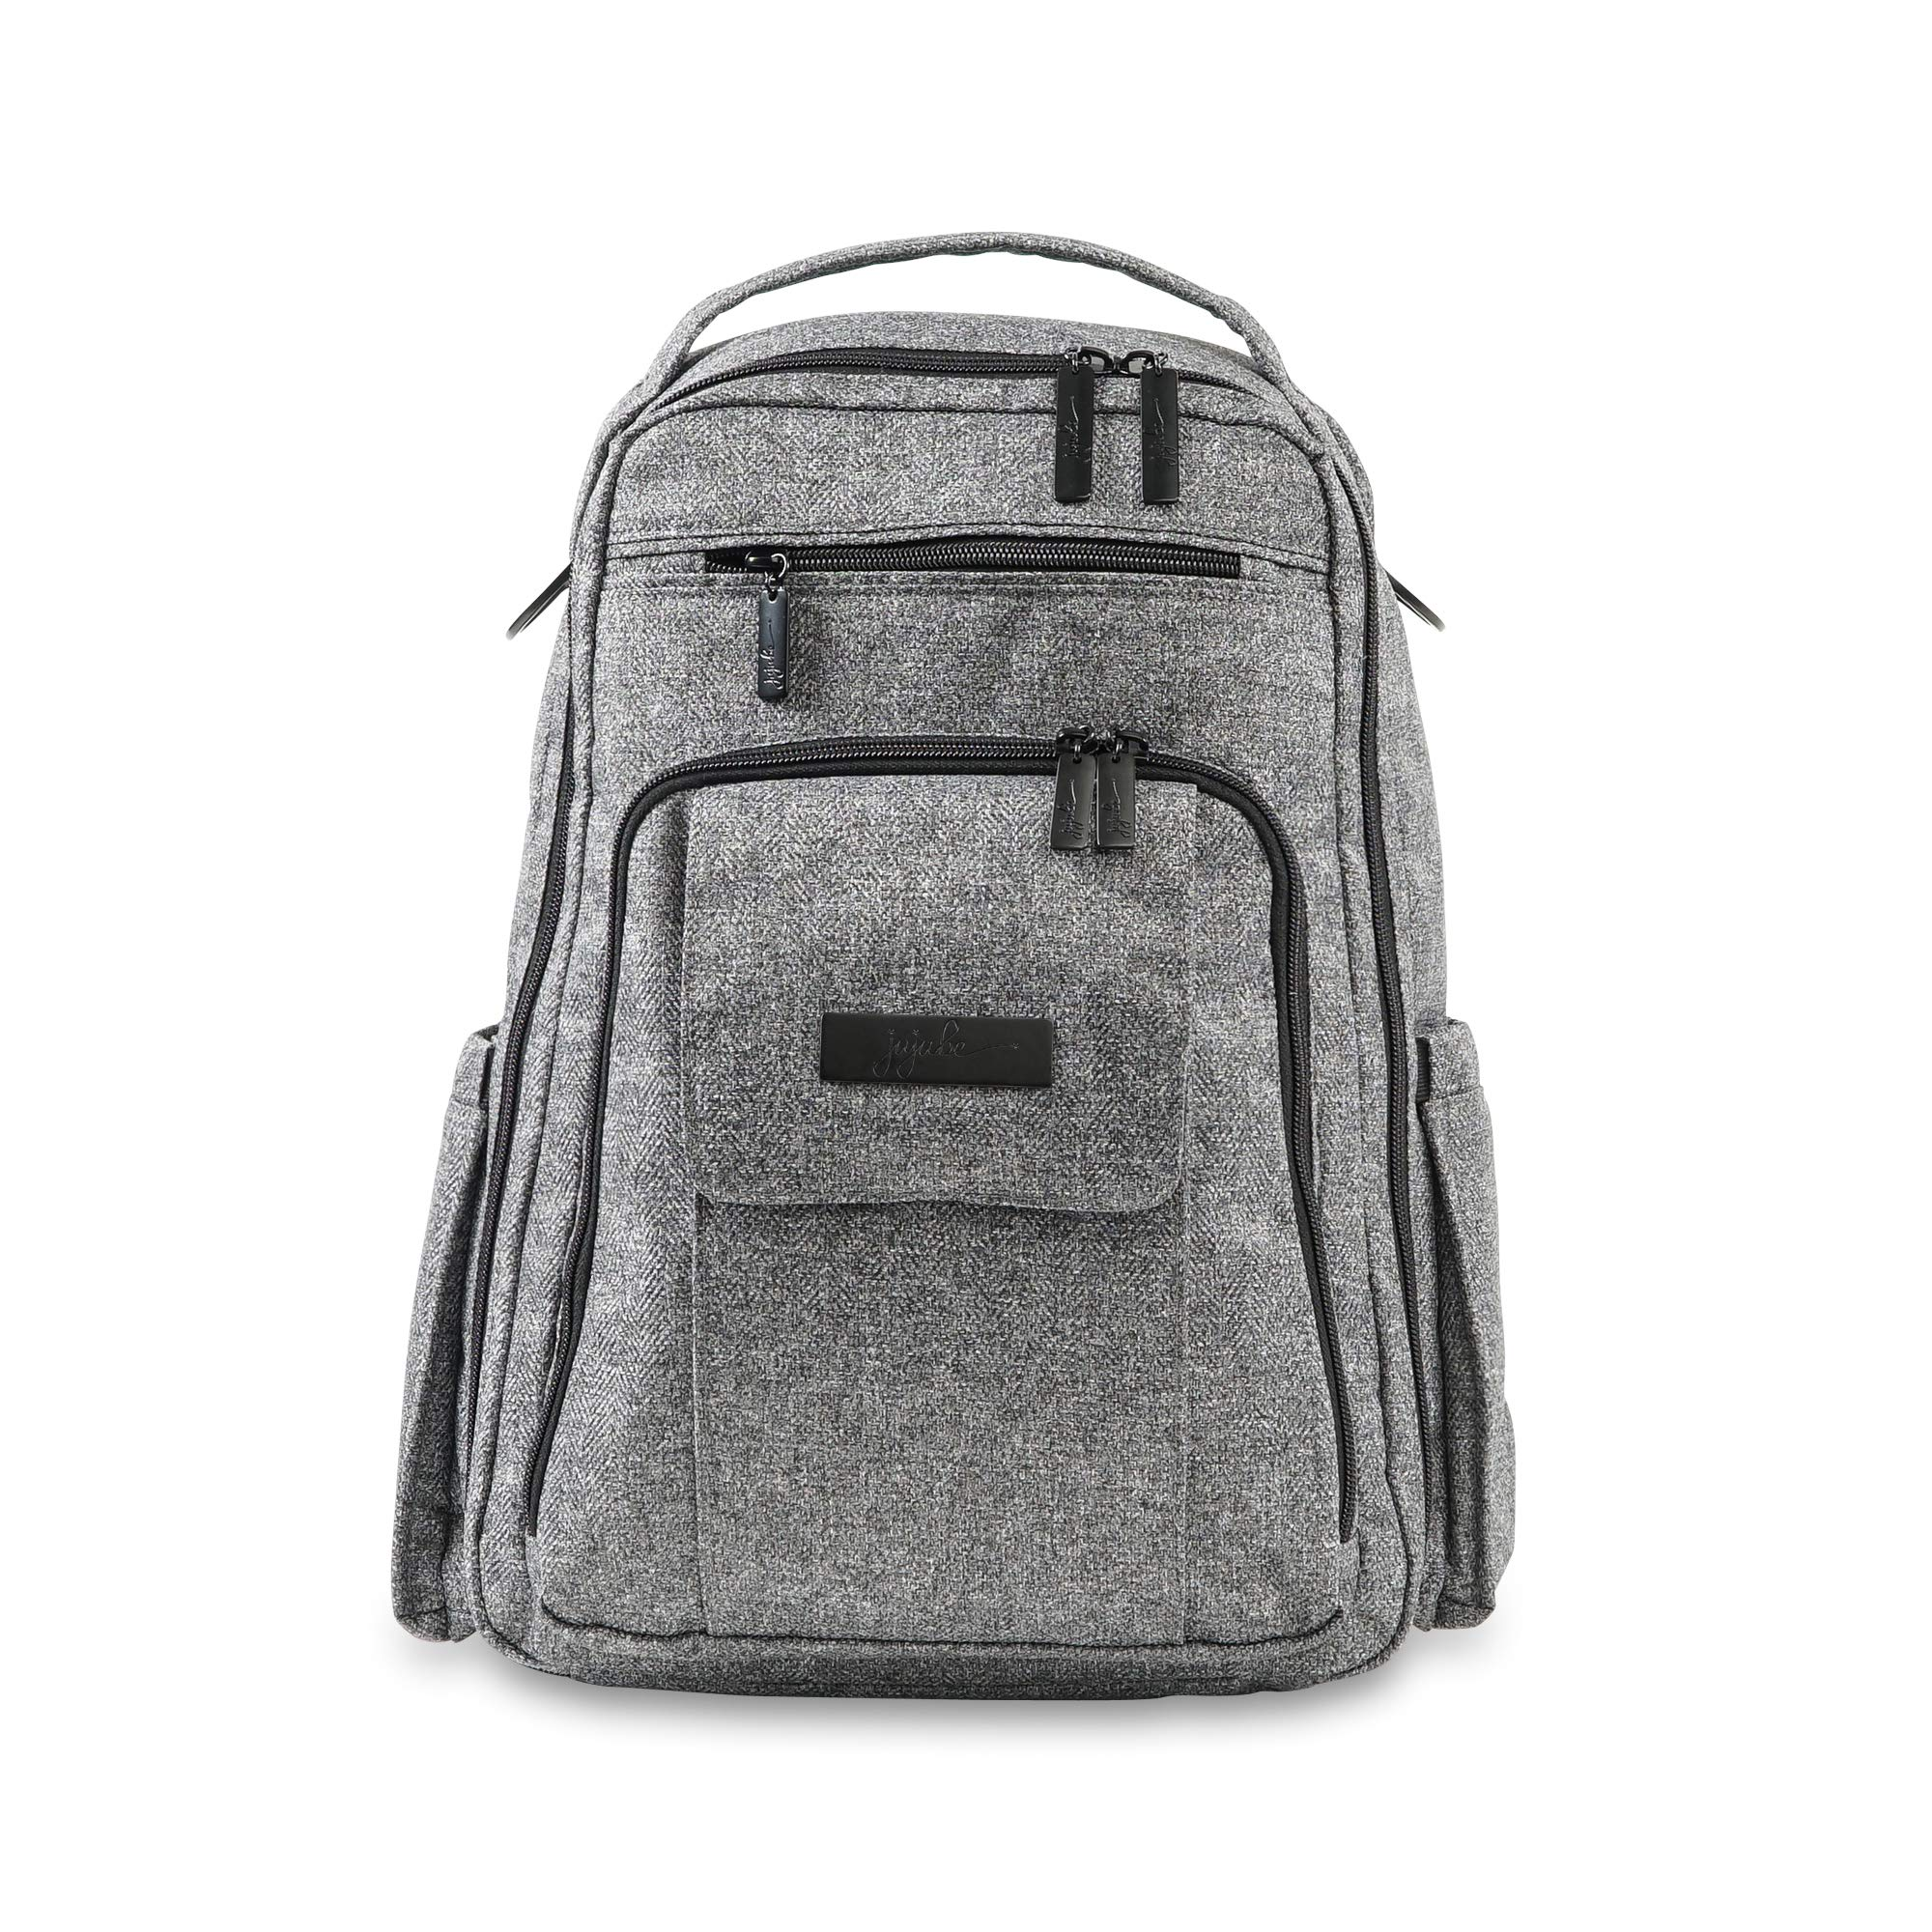 JuJuBe Be Right Back Multi-Funtional Structured Backpack/Diaper Bag Onyx Collection, Gray Matter